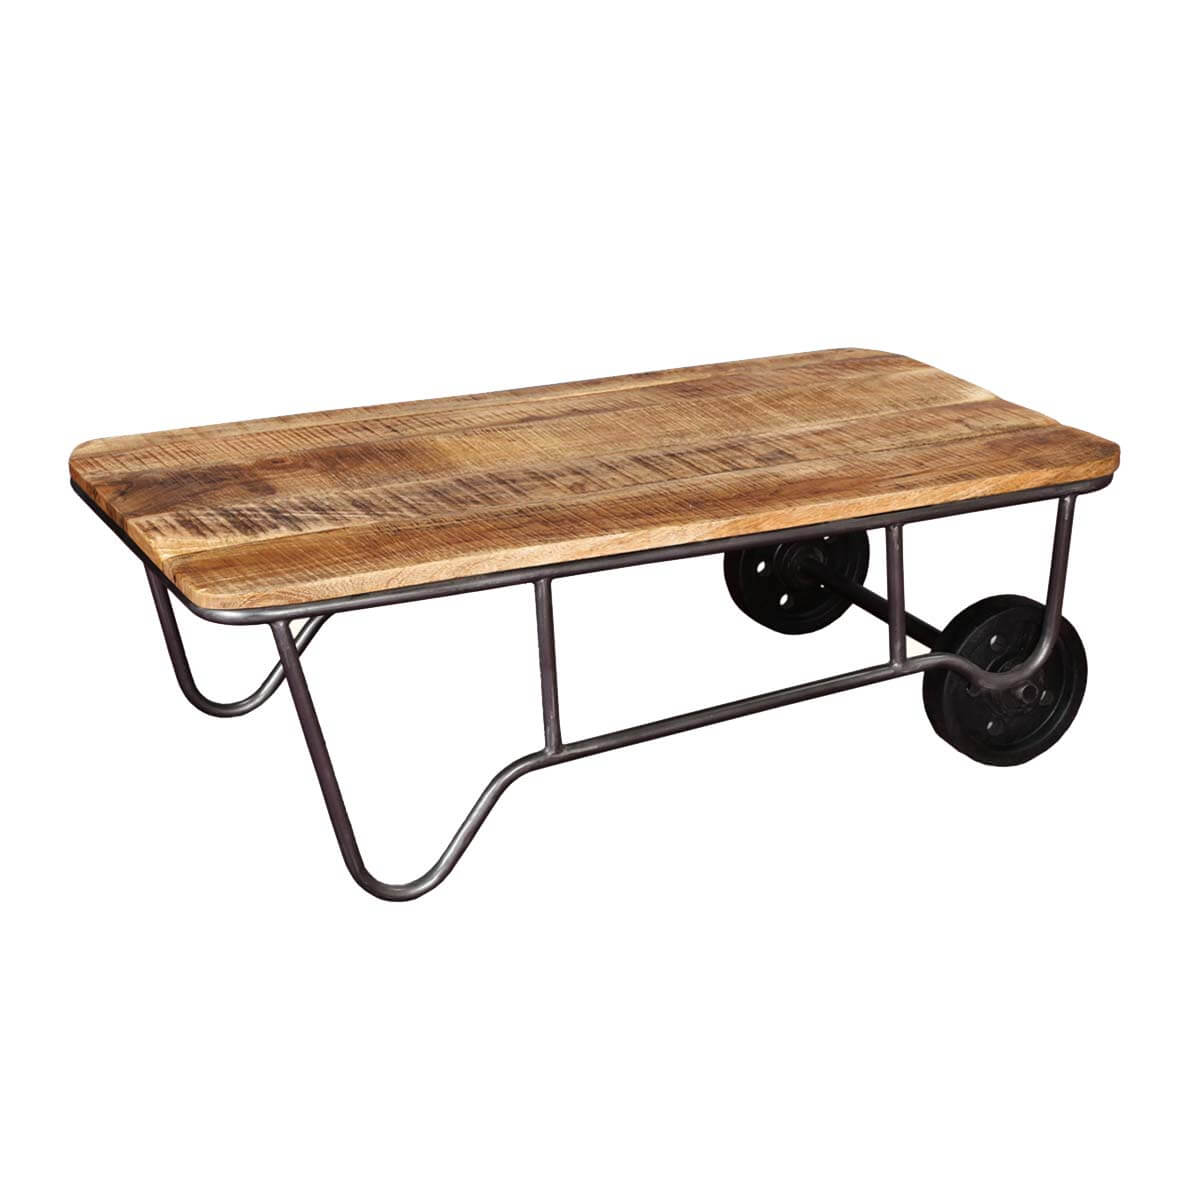 Rustic Wood And Metal Coffee Tables: Industrial Rustic Mango Wood & Iron Rolling Coffee Table